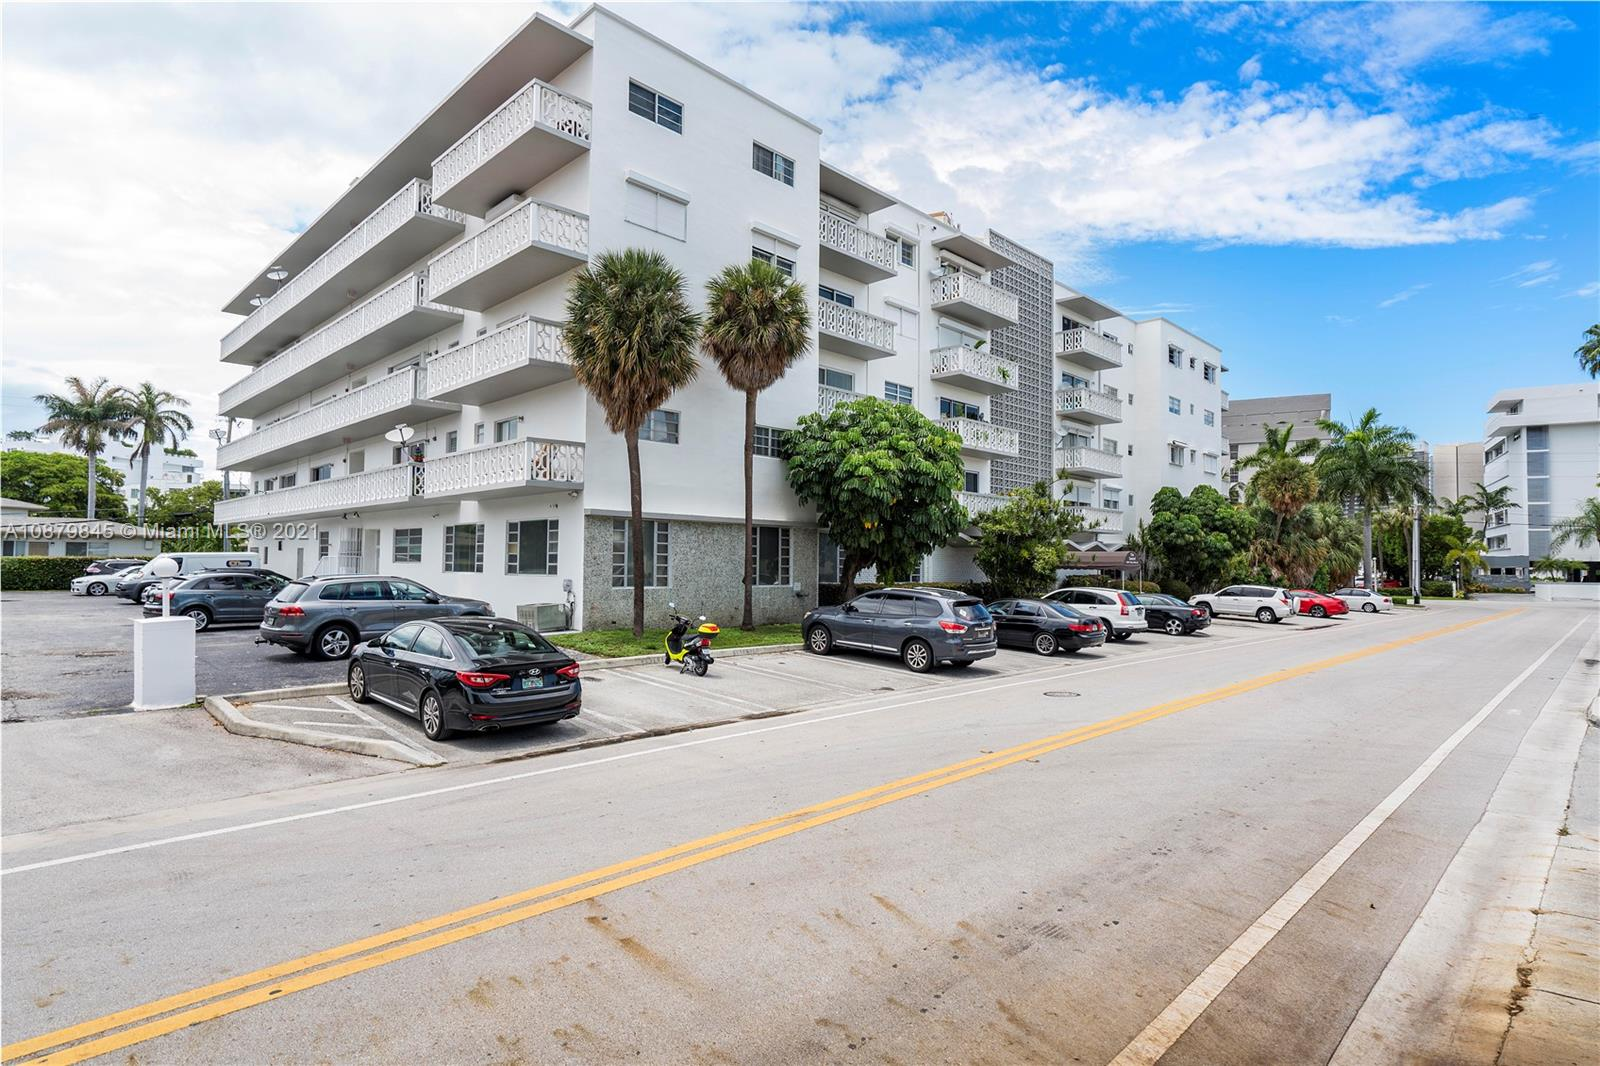 GREAT LOCATION!! Large 1 bedroom unit with 1 ½ bathrooms.  Entirely updated with stainless steel appliances and other upgrades.  Large balcony faces north with nice garden views with minimal obstructions. Lots of closet space. Building is very well maintained and quiet, has a pool and an updated lobby. Laundry in building on 1st floor. Secured building, features beautiful and expansive lobby areas. Steps to the school, shops, restaurants, the beach and houses of worship.One assigned parking space as well as plenty of street parking directly across the street.  INVESTORS ARE WELCOME - Unit can be rented right away. According to the building rules, only two people can live in this unit. No pets allowed in the building. VERY LOW HOA ONLY $352 PER MONTH.